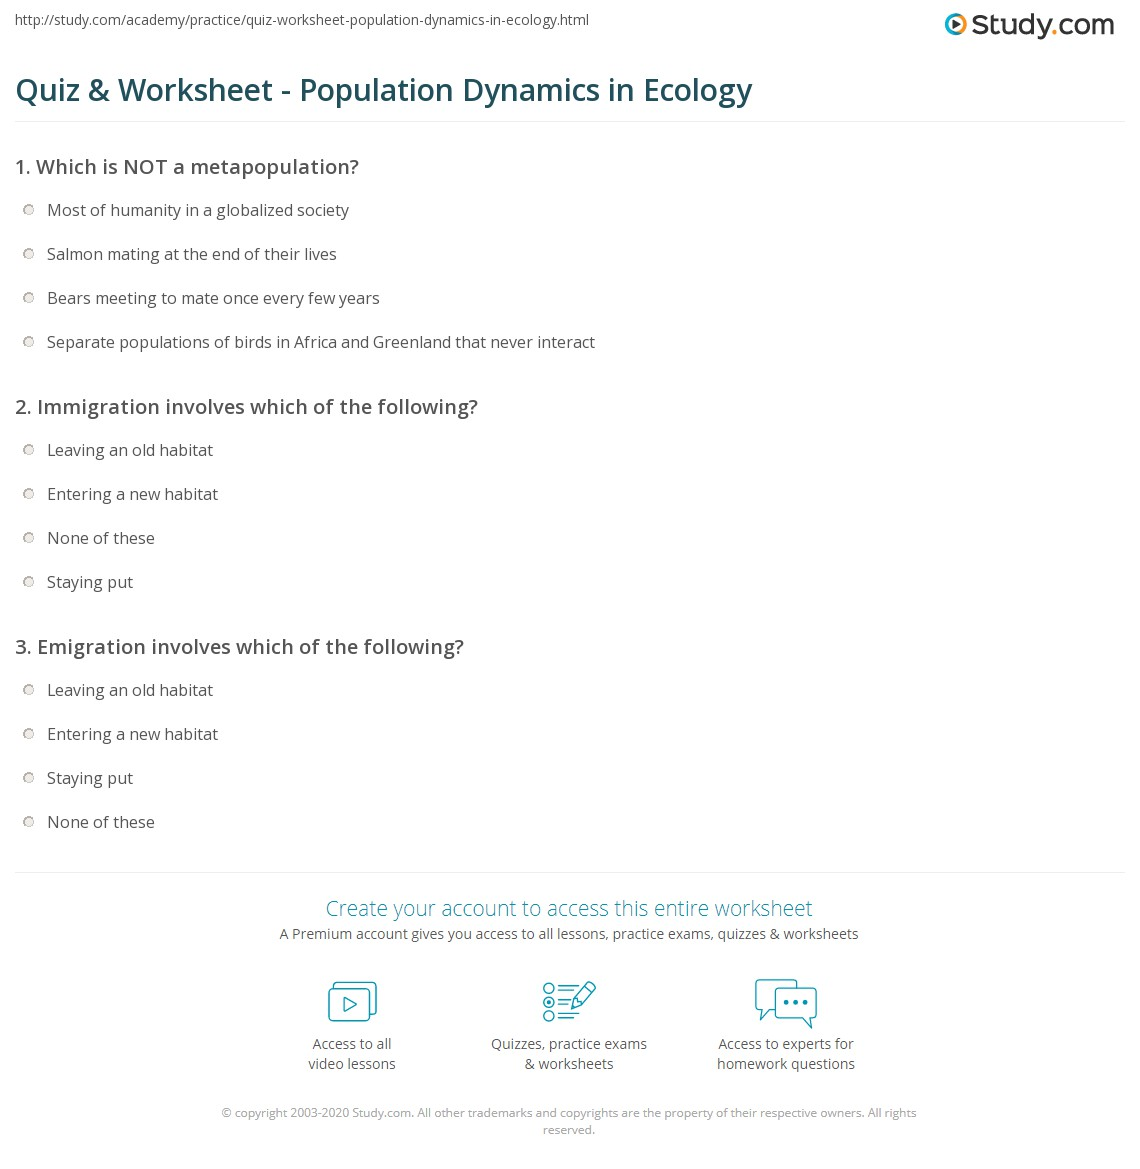 quiz & worksheet - population dynamics in ecology | study